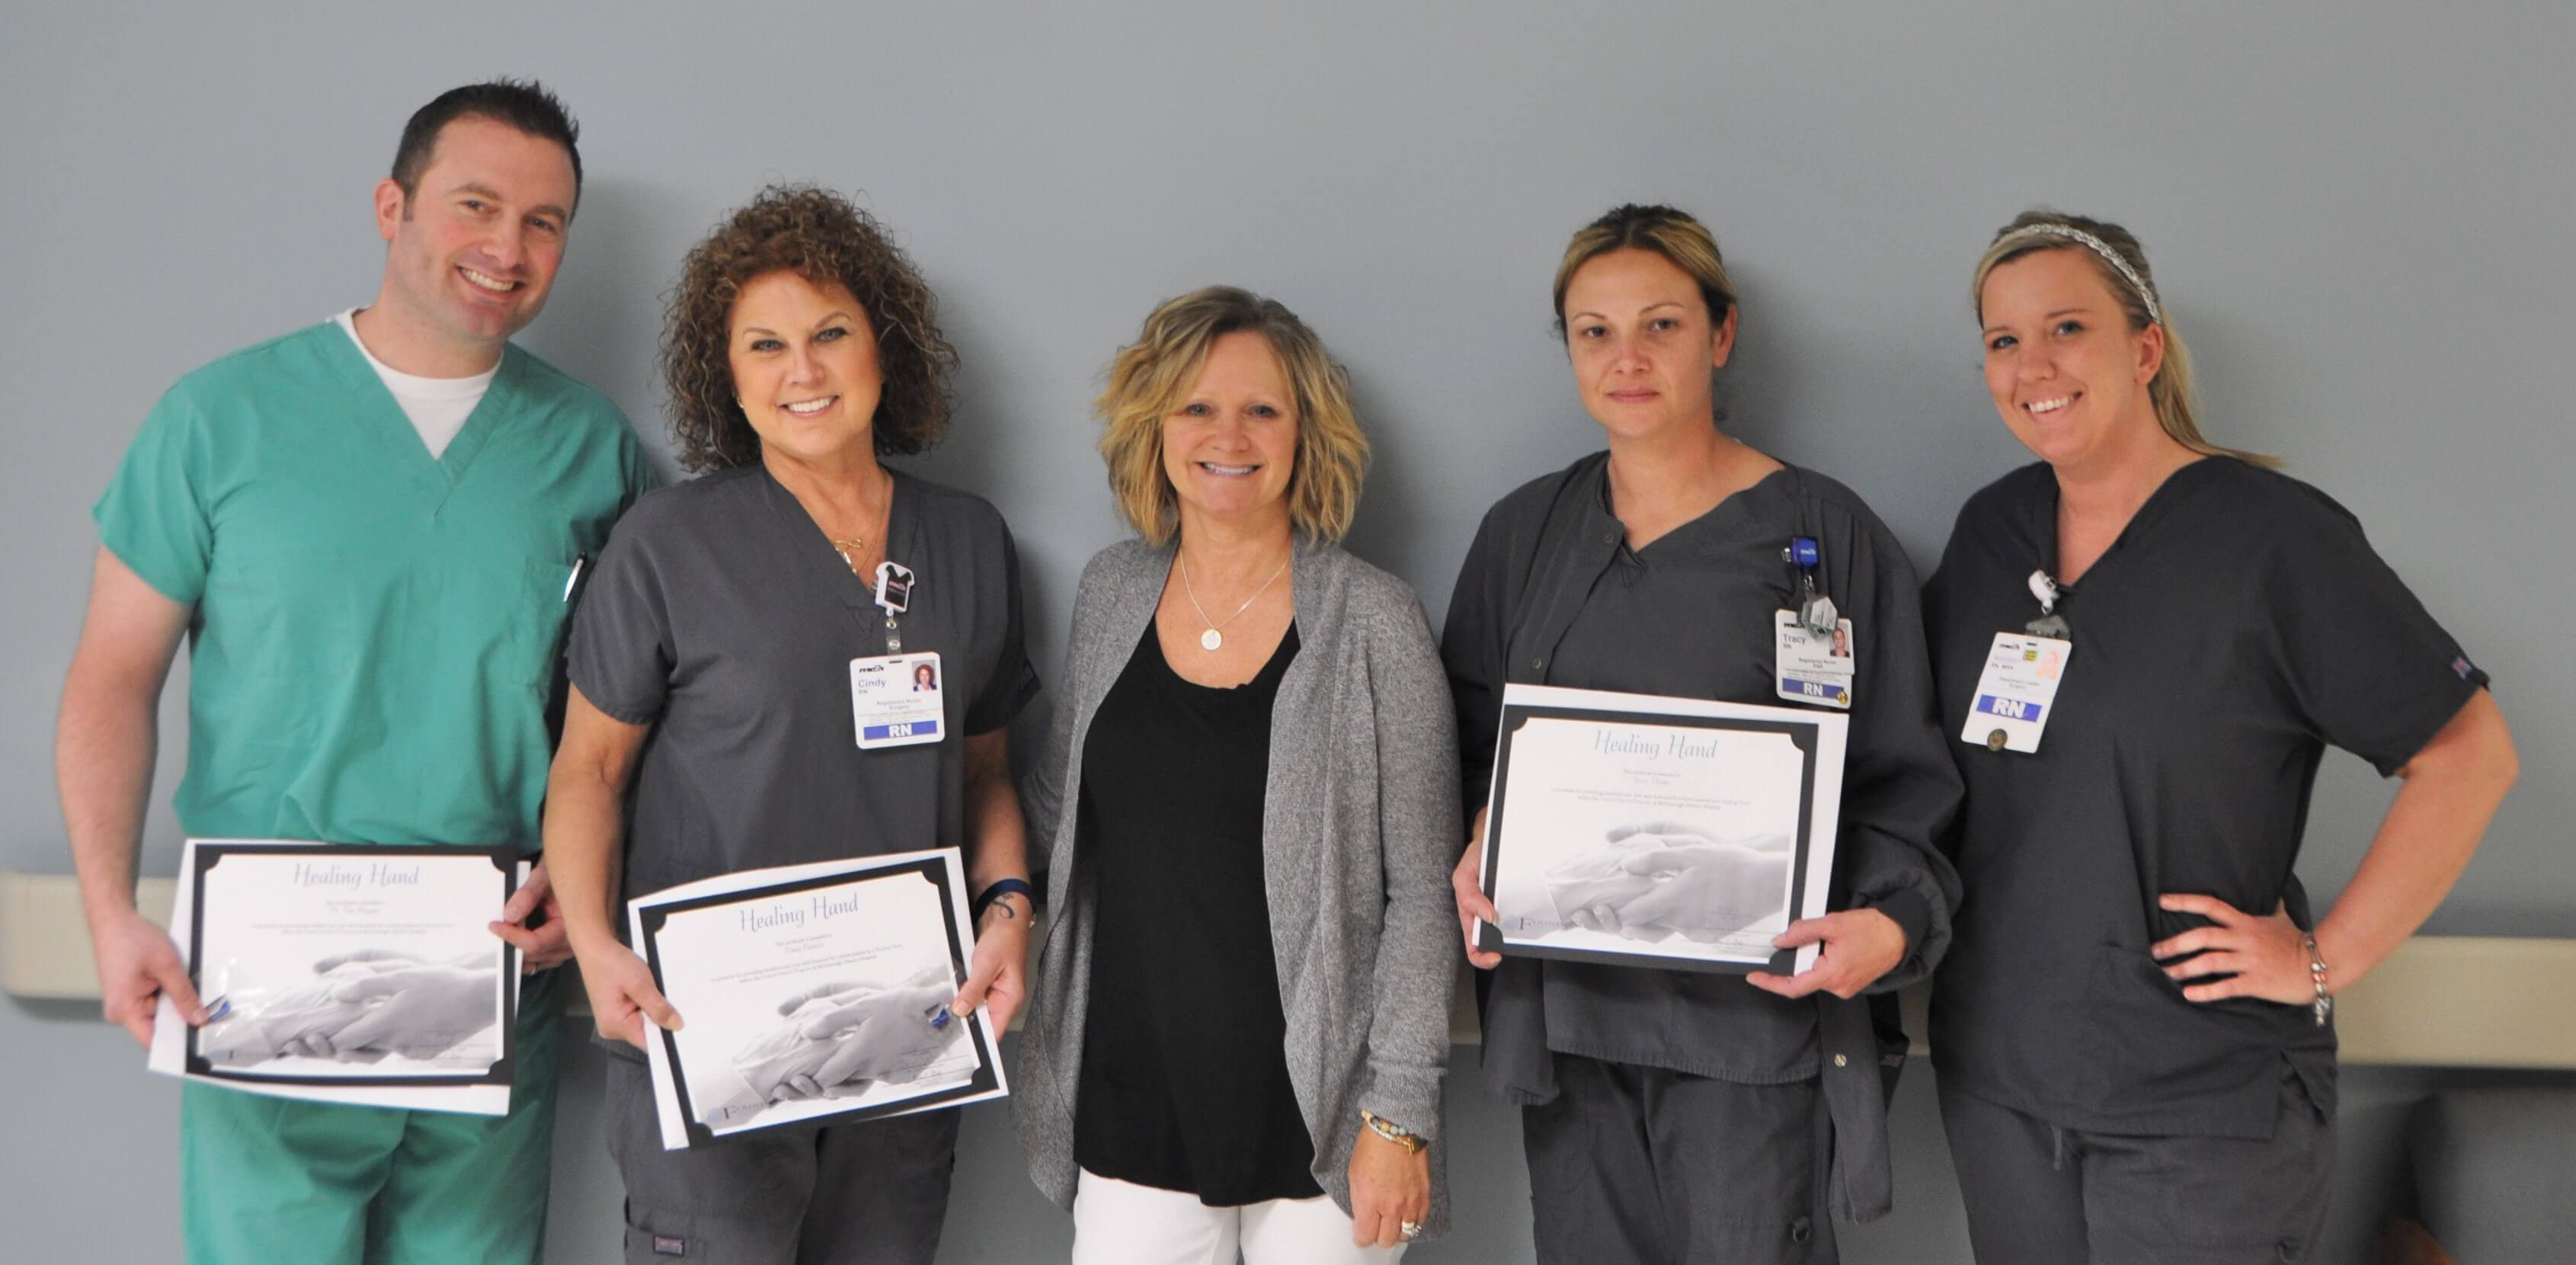 surgical team with award